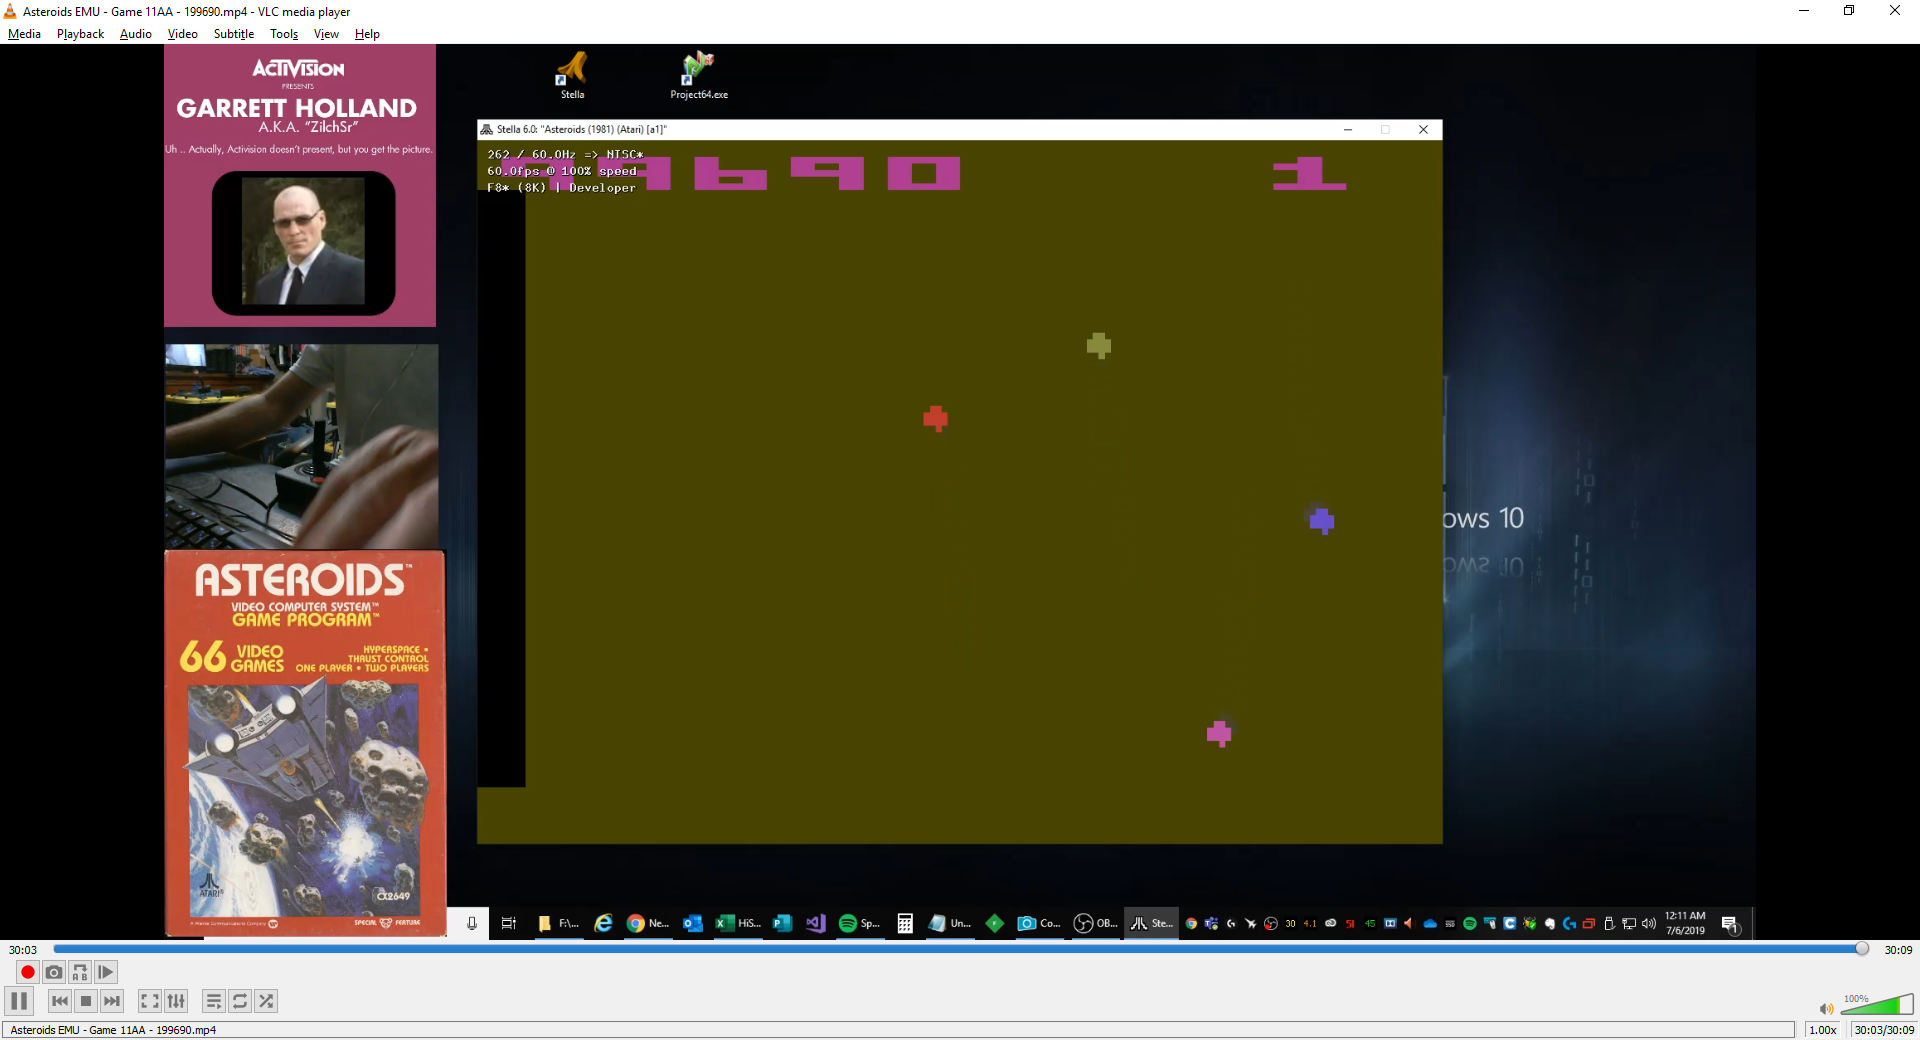 ZilchSr: Asteroids: Game 11 (Atari 2600 Emulated Expert/A Mode) 199,690 points on 2019-07-05 23:17:06